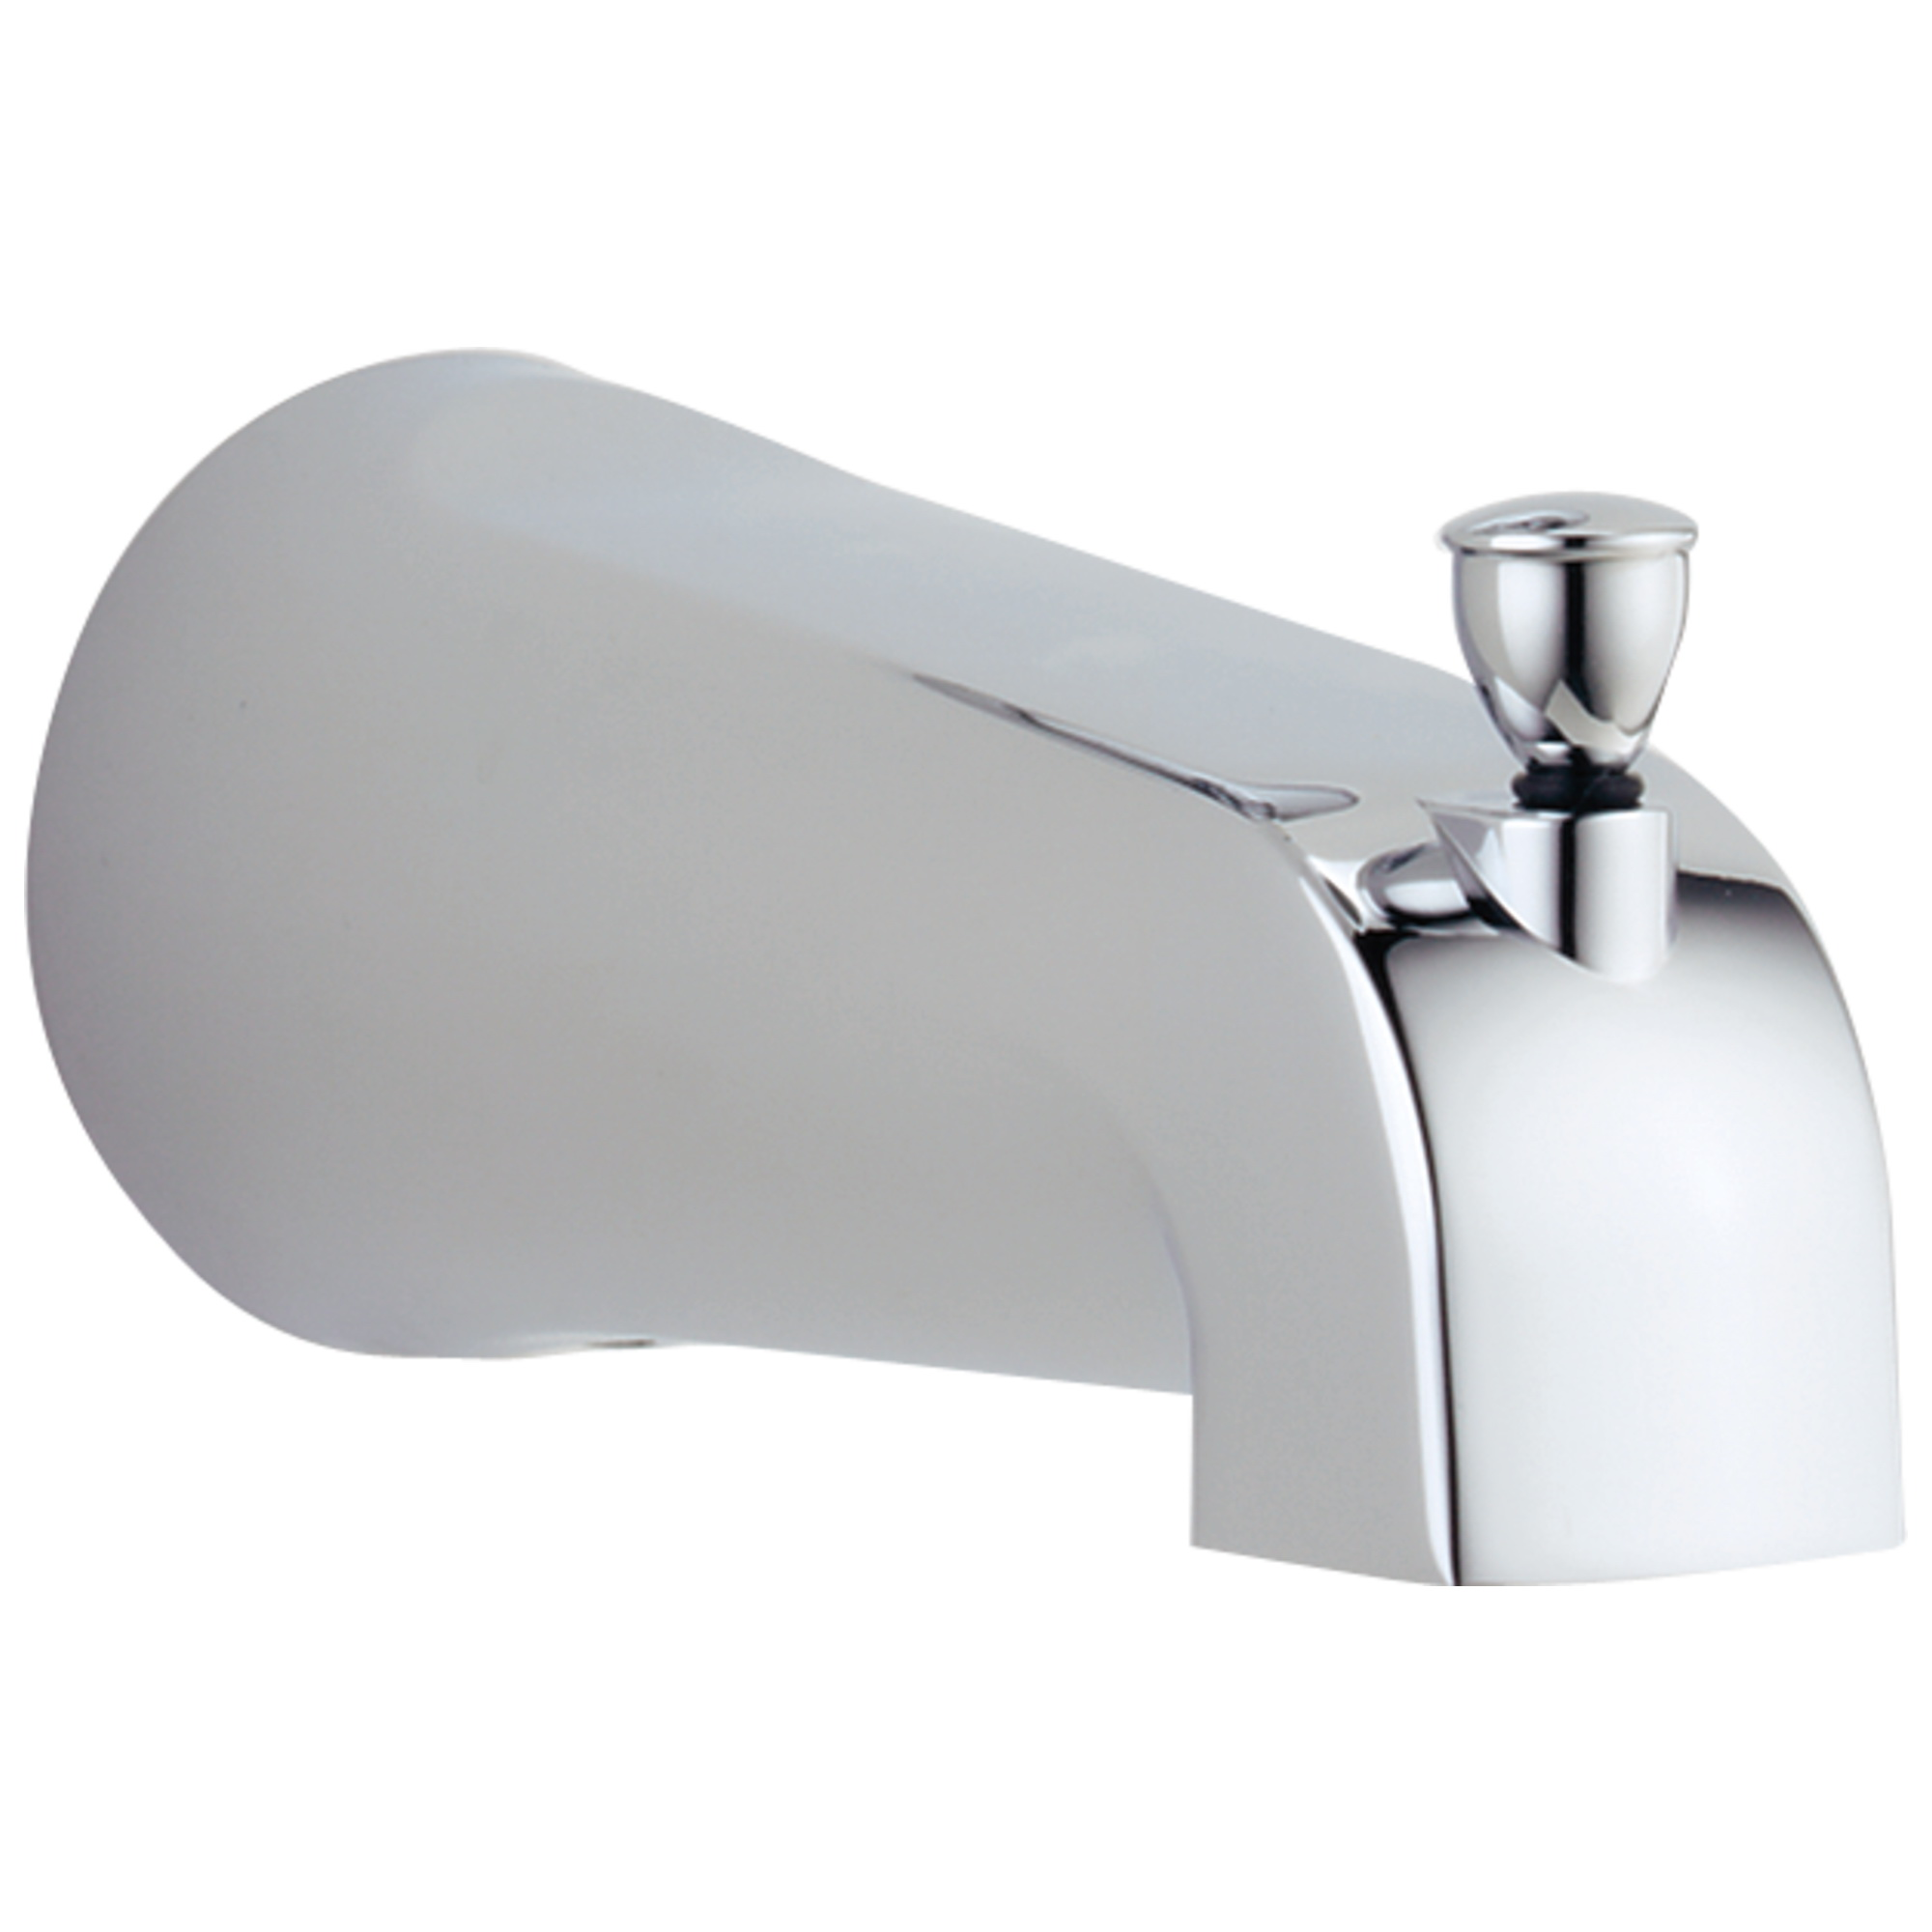 DELTA® RP81273 Windemere® Slip-On Tub Spout, Plastic, Chrome Plated